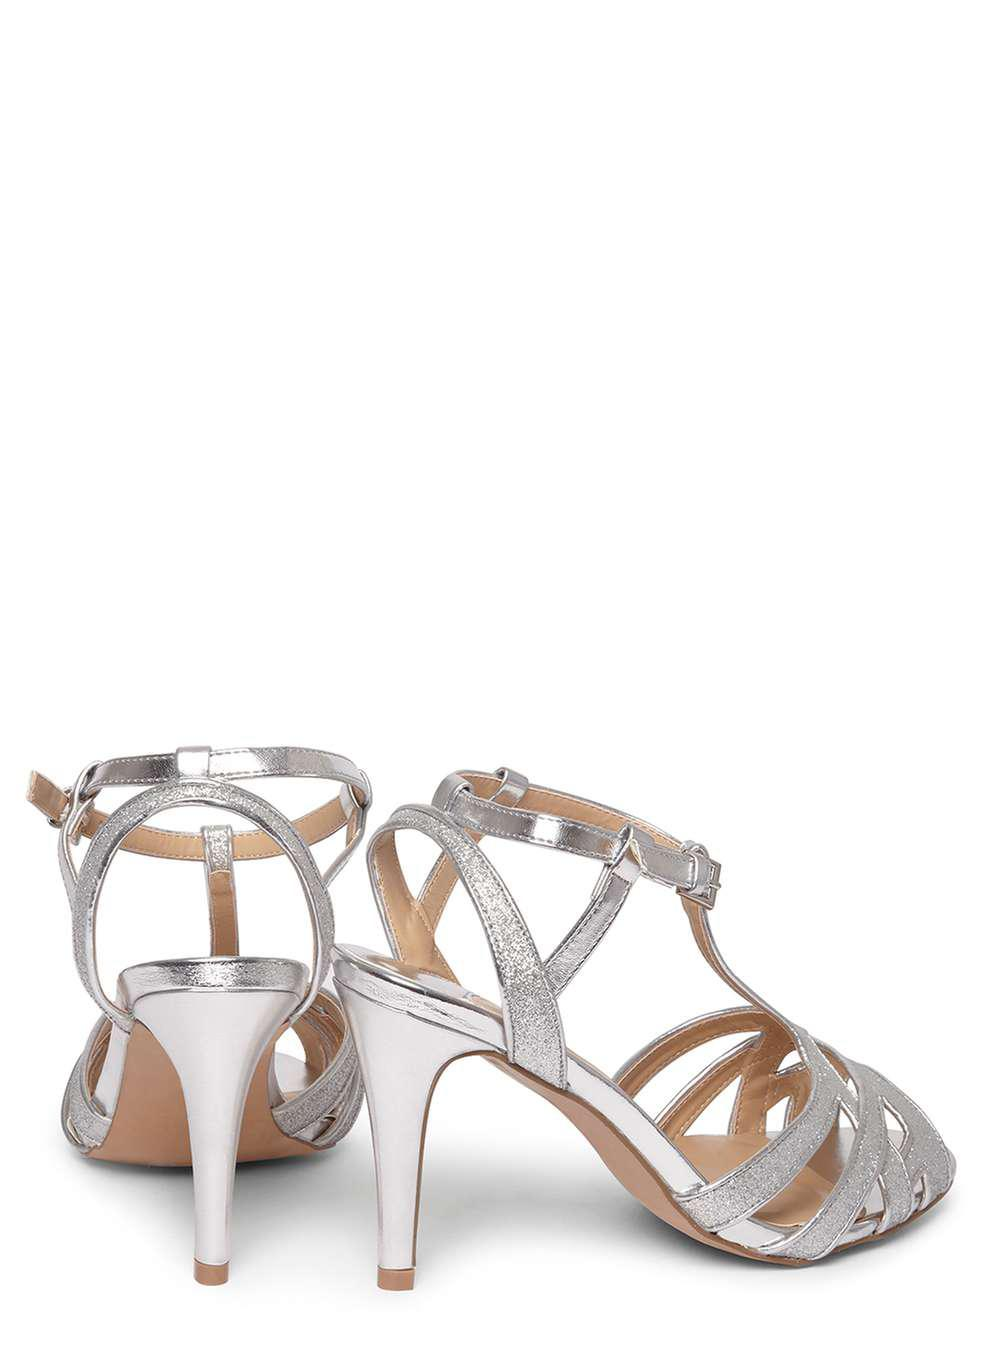 40a87203c5e0 Lyst - Dorothy Perkins Wide Fit Silver  starstruck  Sandals in Metallic